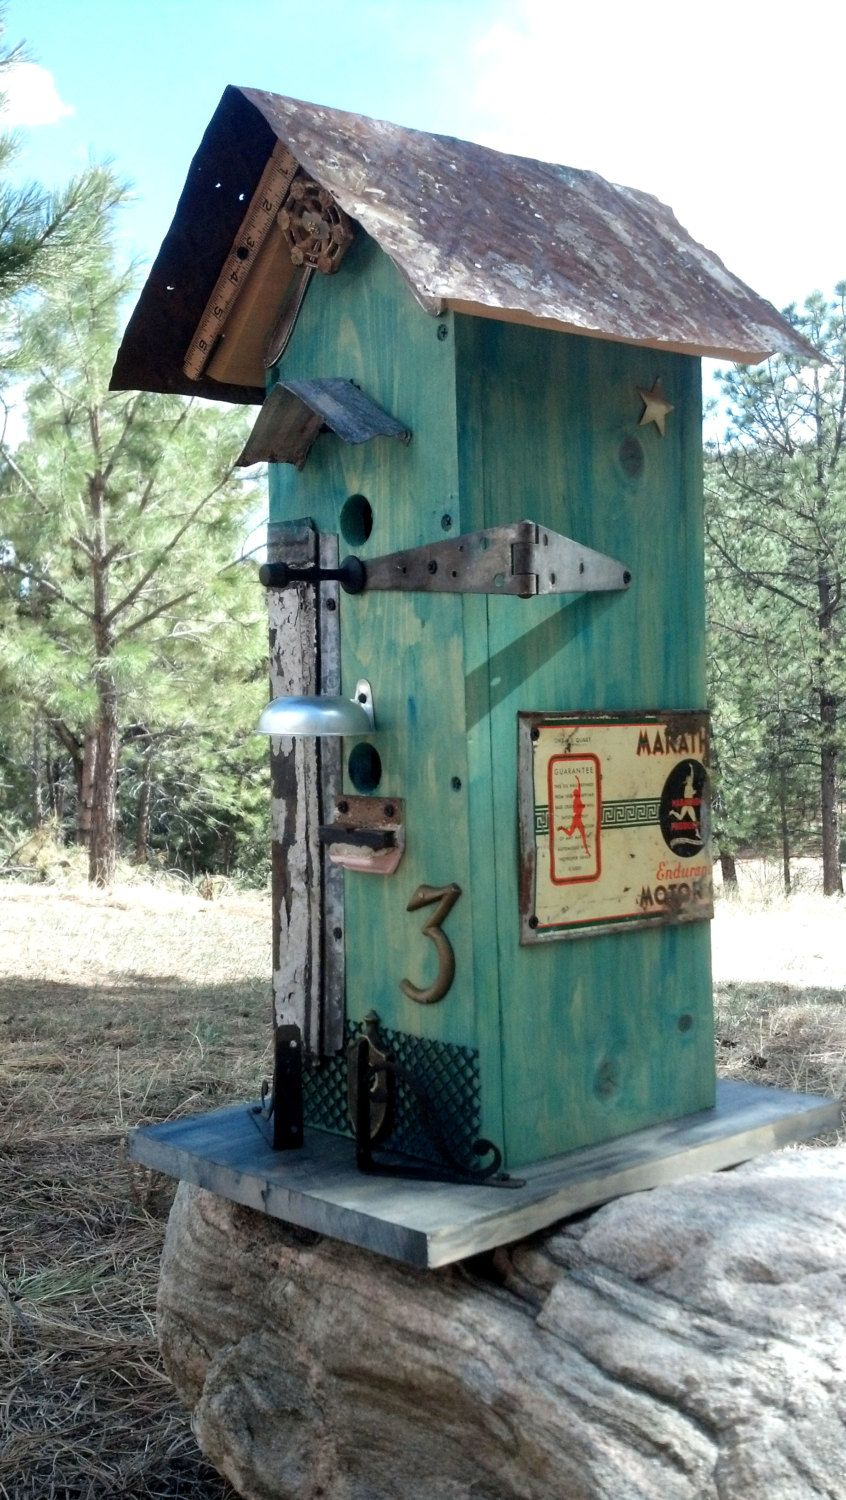 Rustic birdhouse vintage recycled architectural salvage assemblage yard art primitive antique for Home architectural salvage yards